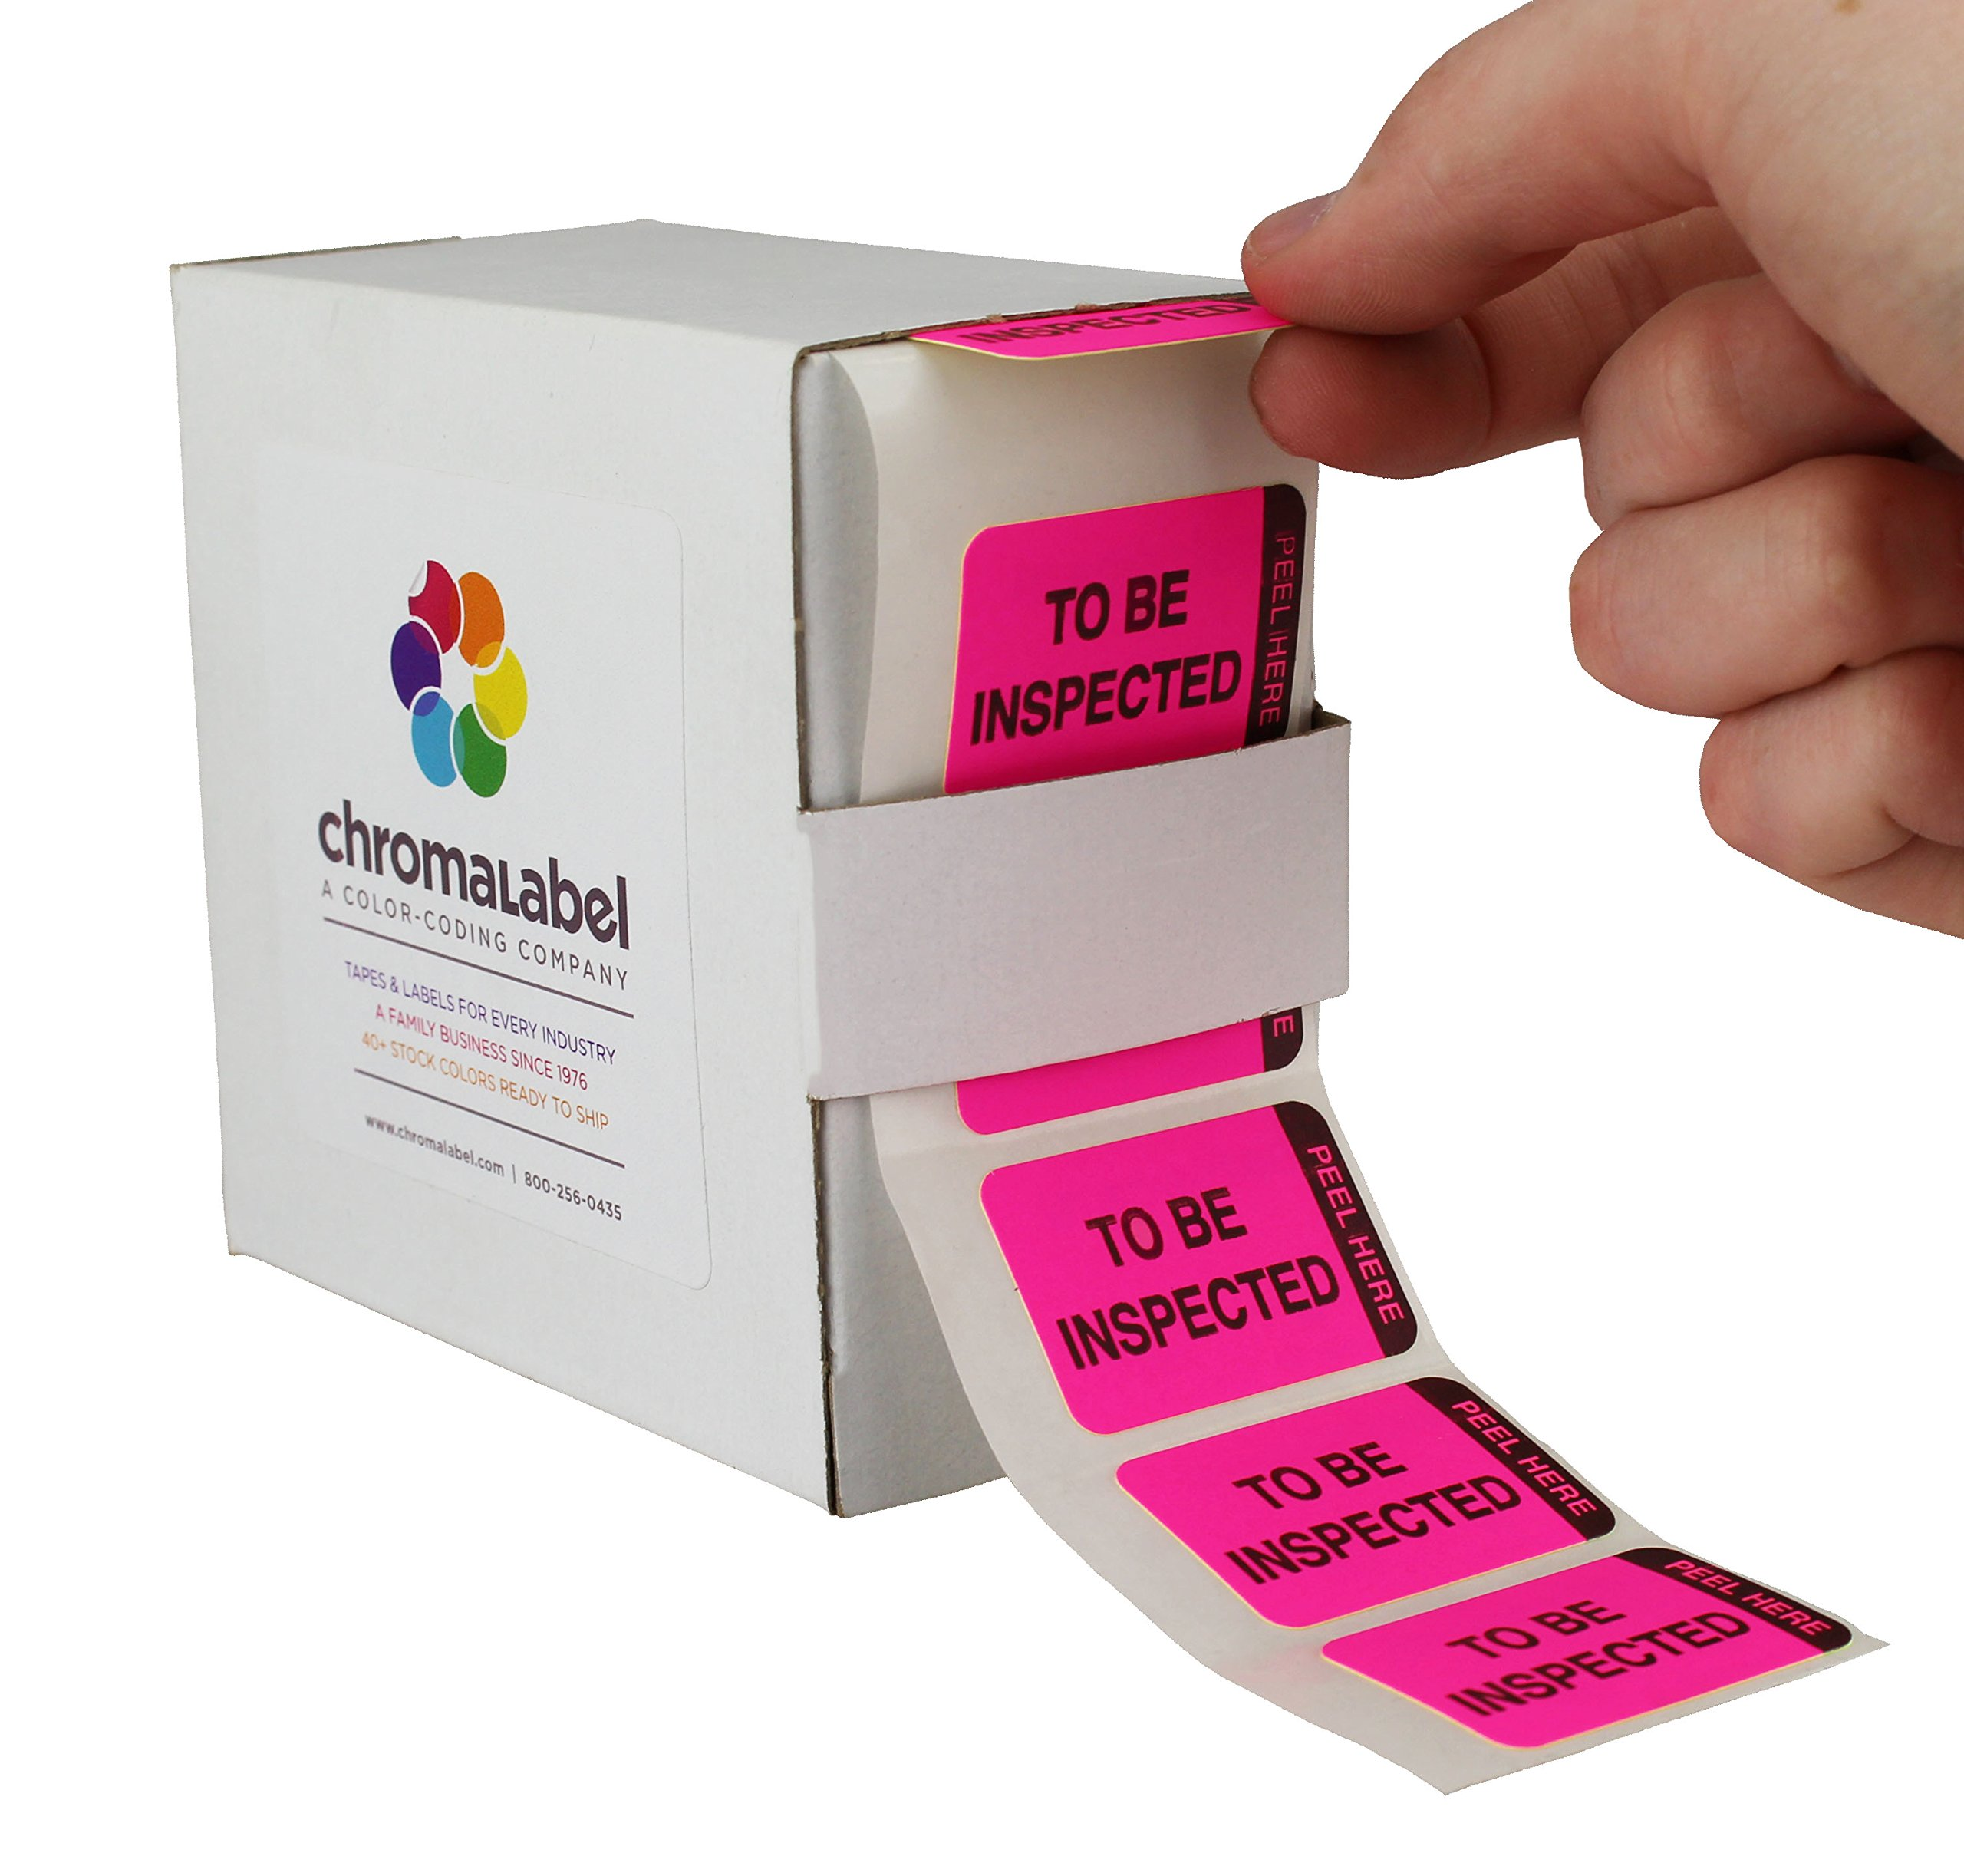 ChromaLabel 1 x 1-1/2 inch Fluorescent Pink/Yellow Double Layer QC Label | 'To Be Inspected/Inspected' Imprint | 250/Dispenser Box by ChromaLabel (Image #2)